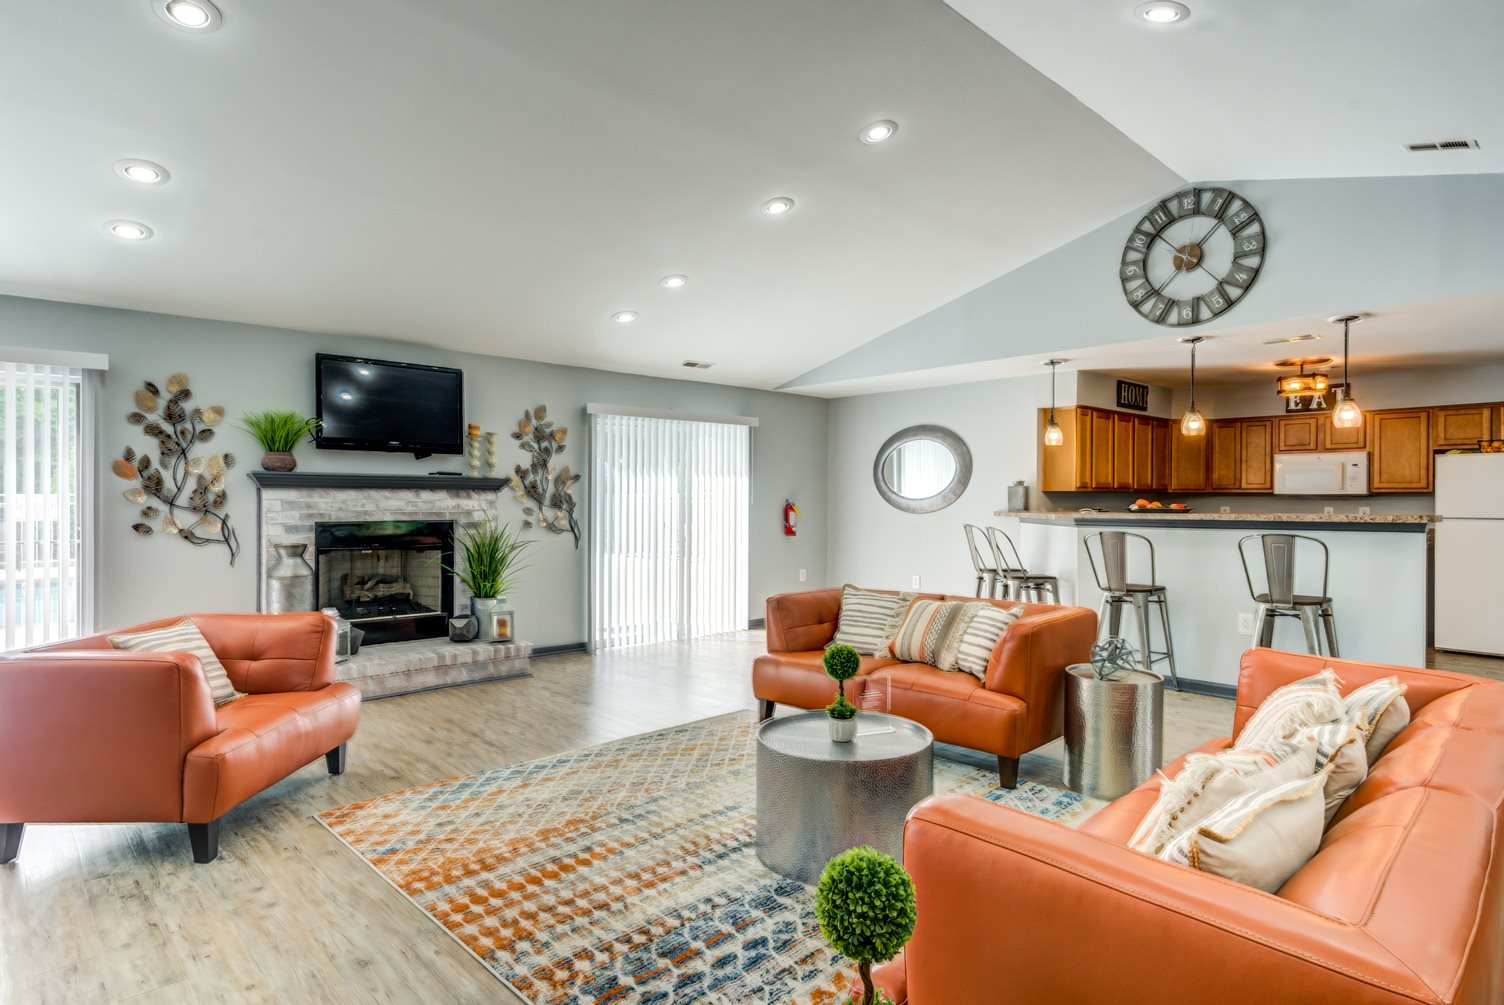 Clubhouse interior with vaulted ceilings, hardwood style flooring, colorful rug, and leather chairs